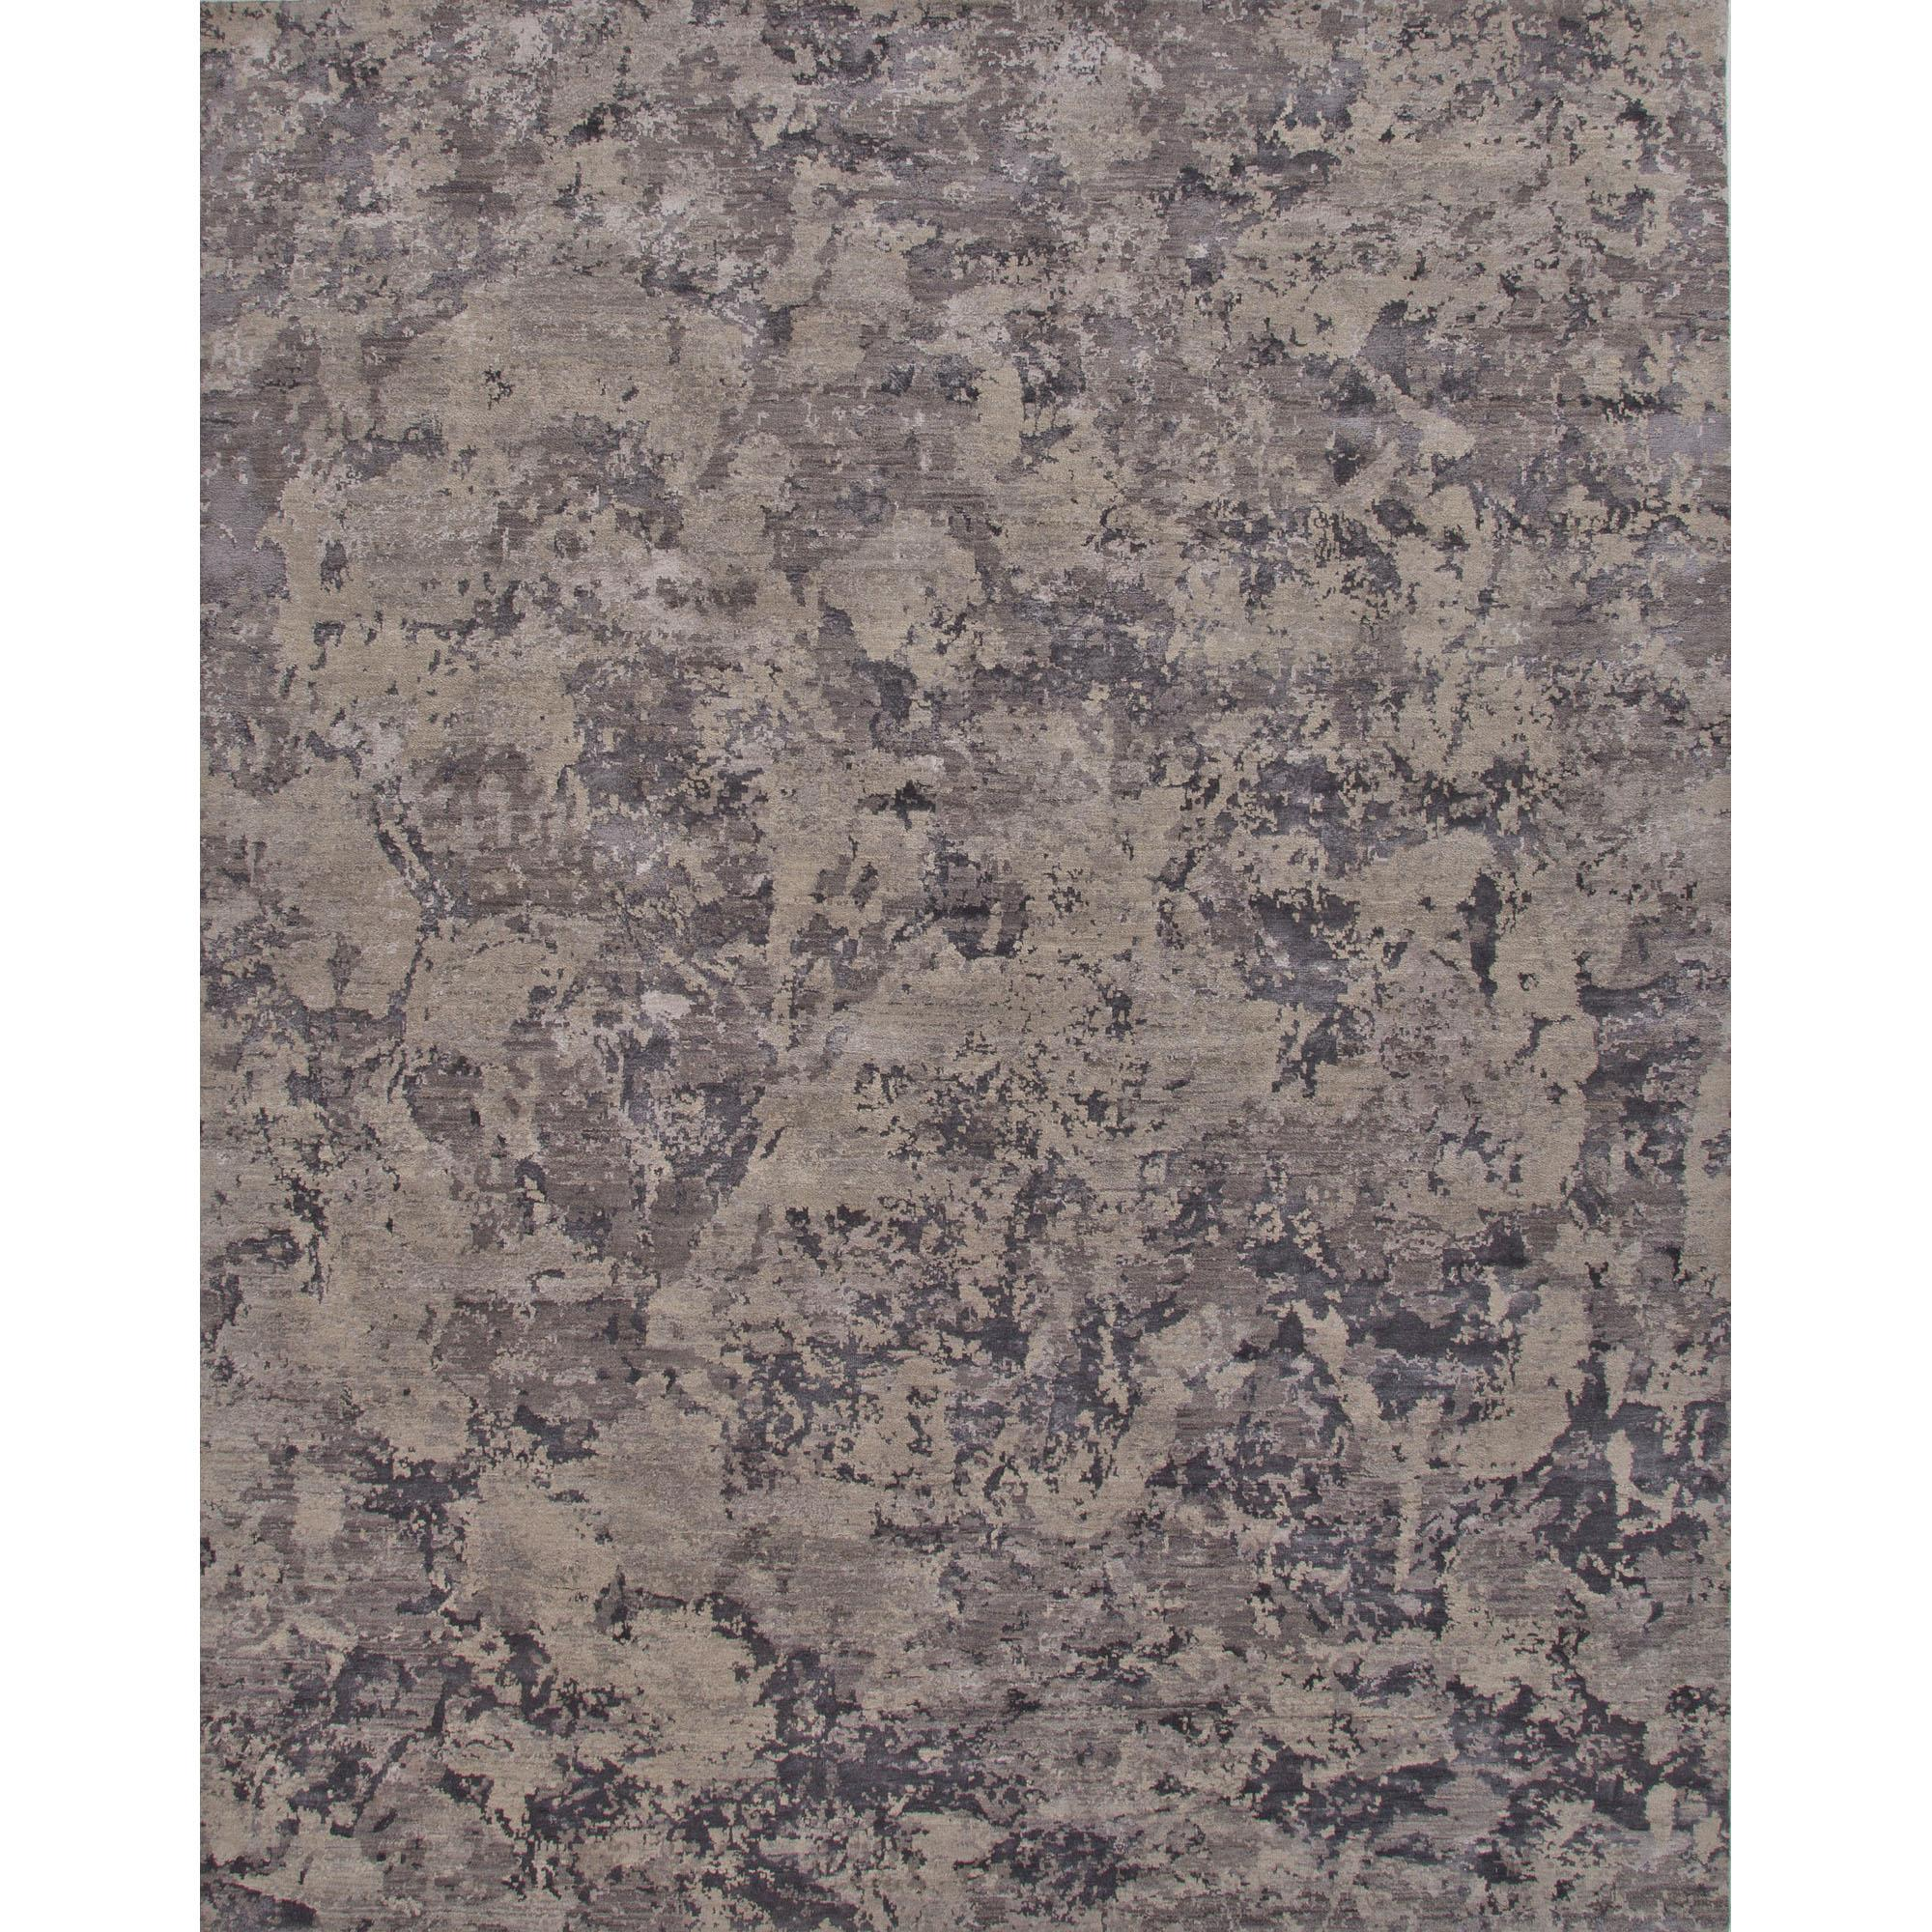 JAIPUR Rugs Chaos Theory By Kavi 9 x 12 Rug - Item Number: RUG119227